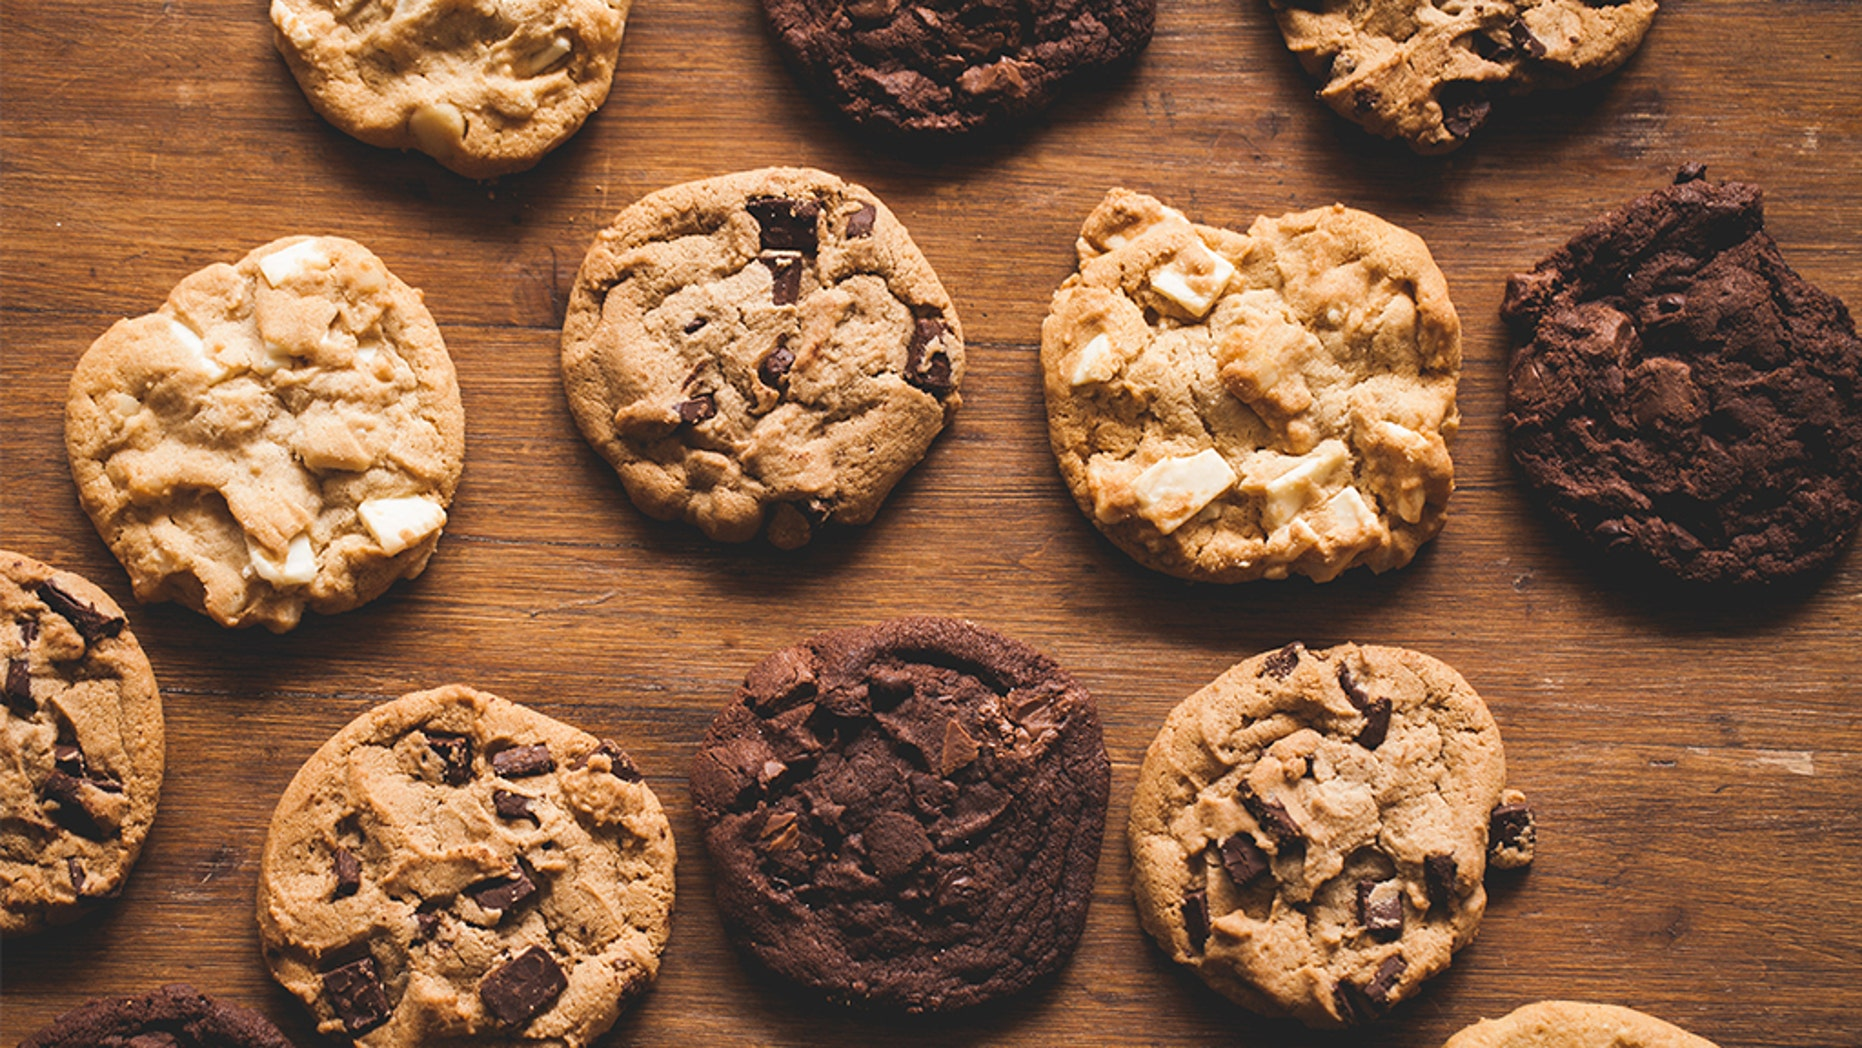 CDC: Say no to raw cookie dough